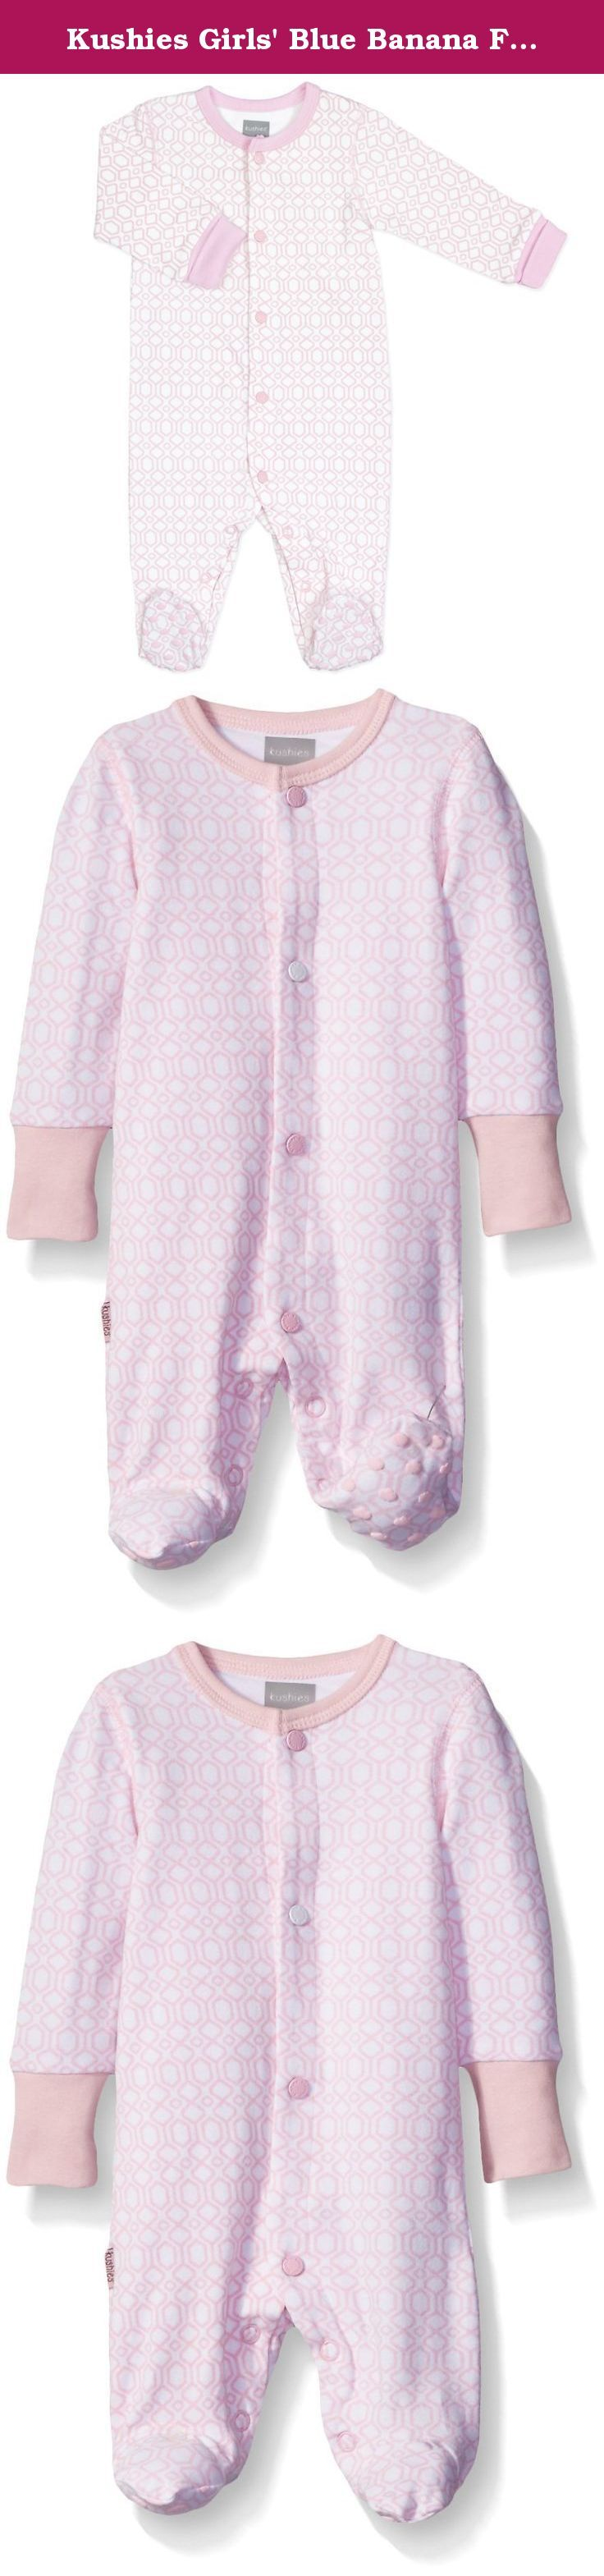 Kushies Girls' Blue Banana Floral Bow Footie Pajamas Footed Sleeper Baby Pajamas, Light Pink, 03 Months. Made of 95 percent cotton and 5 percent lycra for comfort and softness, this geo baby front snap sleeper stands out in a crowd. The Kushies sleeper offers a snap front closure and built-in feet to keep your baby's little feet cozy and warm.